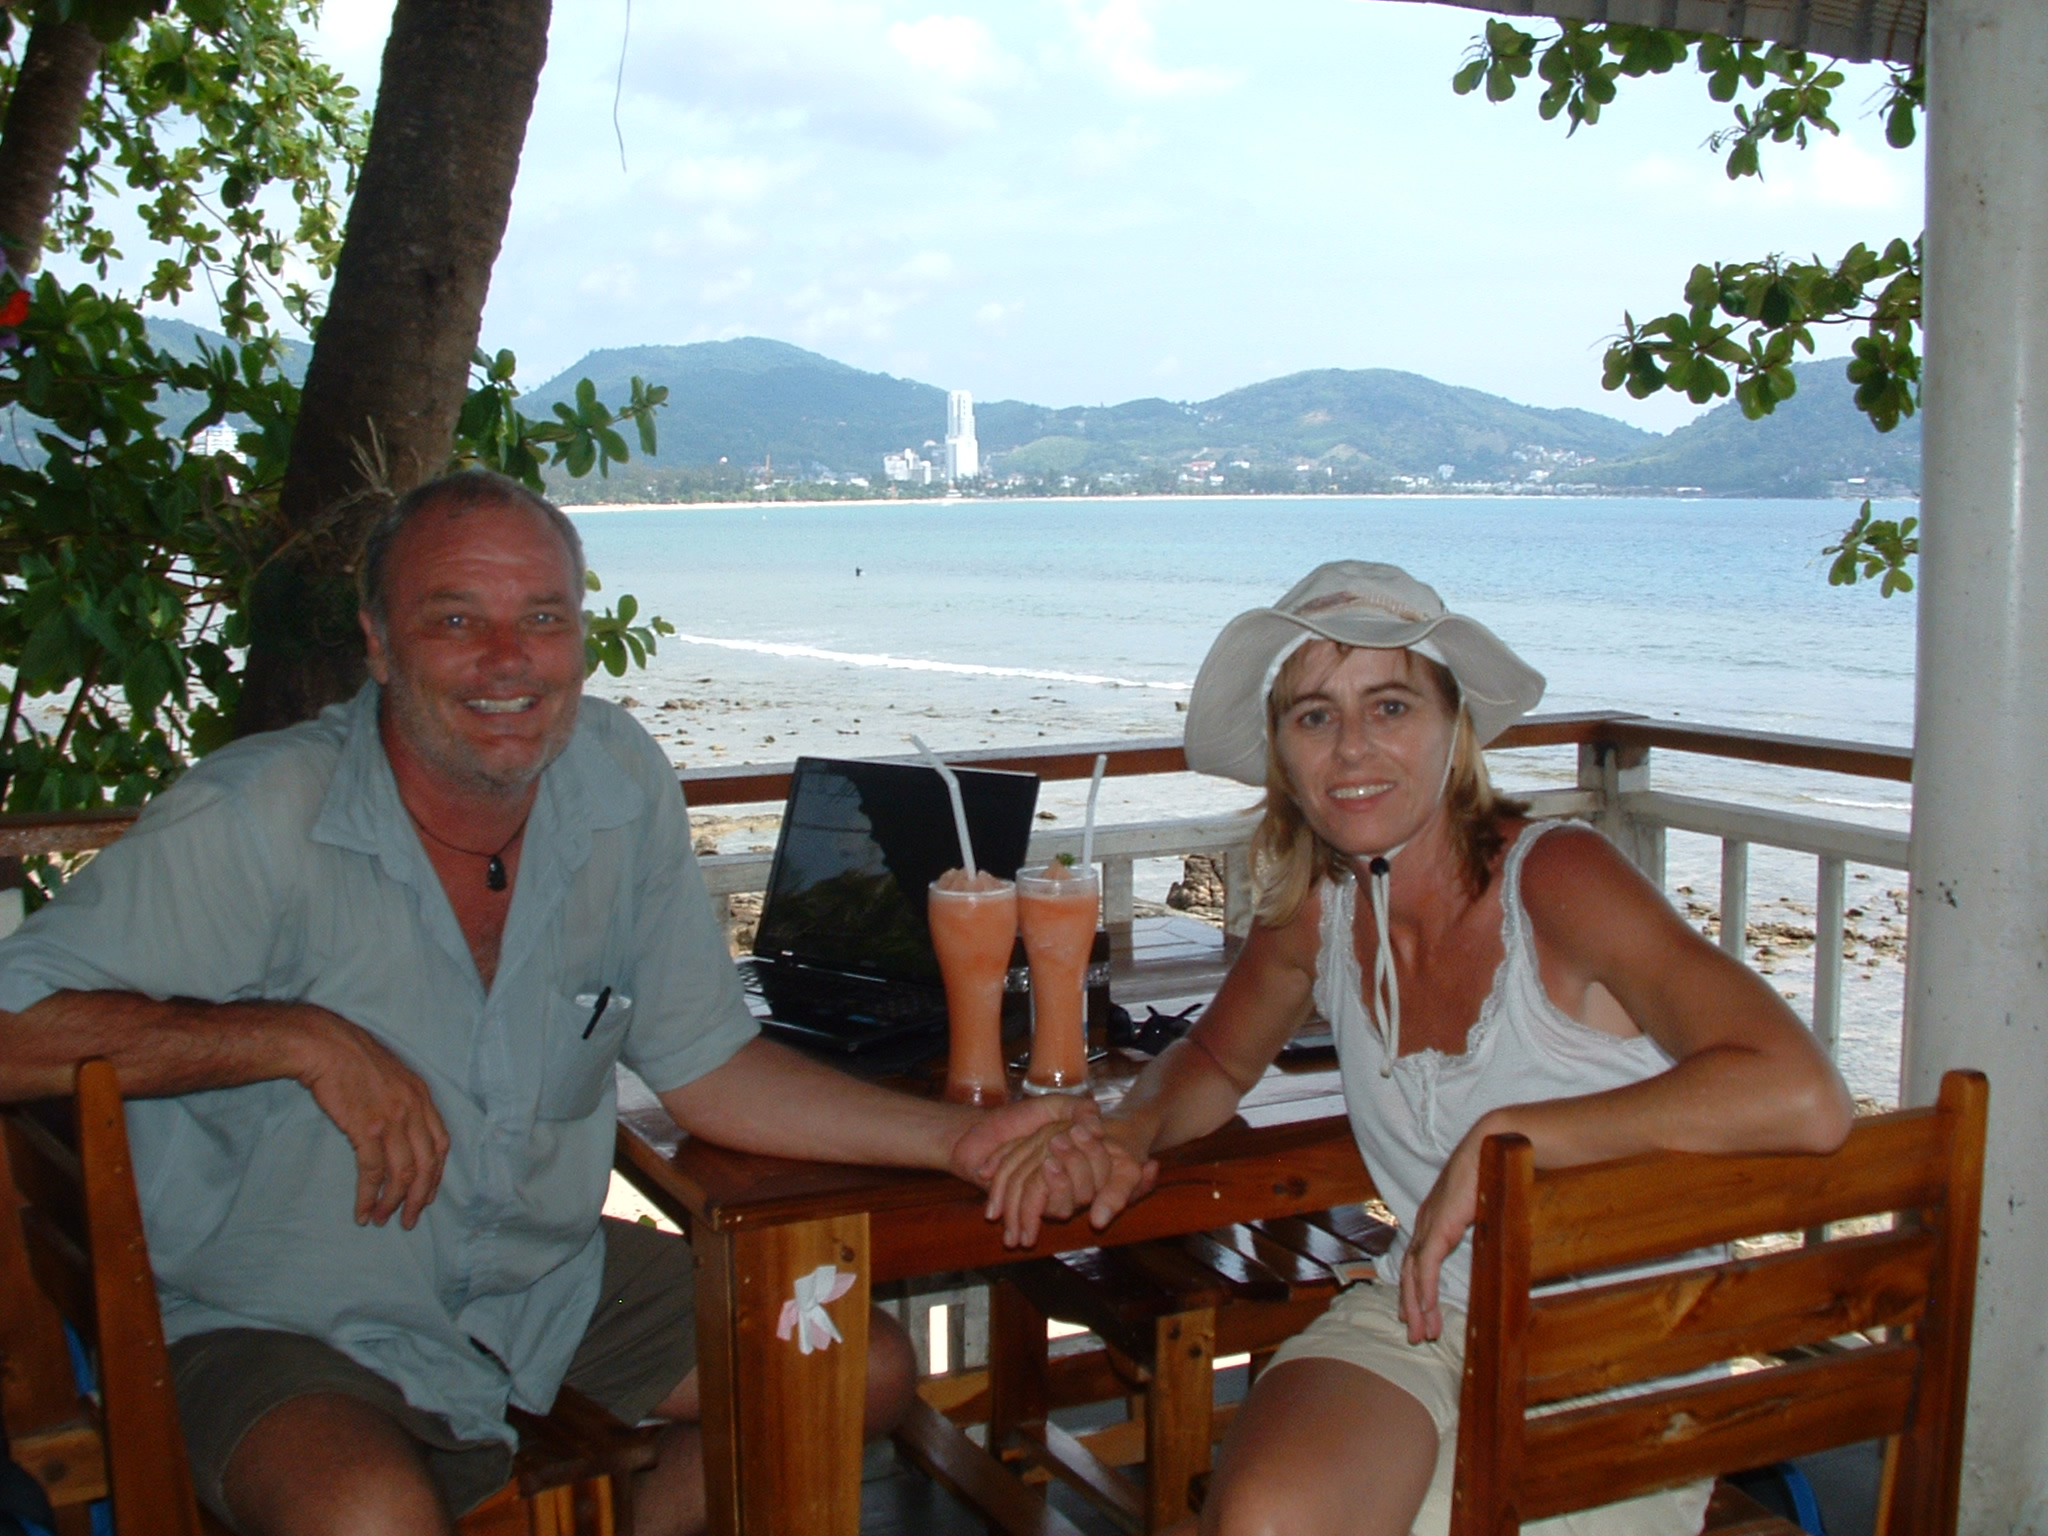 Menno and Janneke in Patong